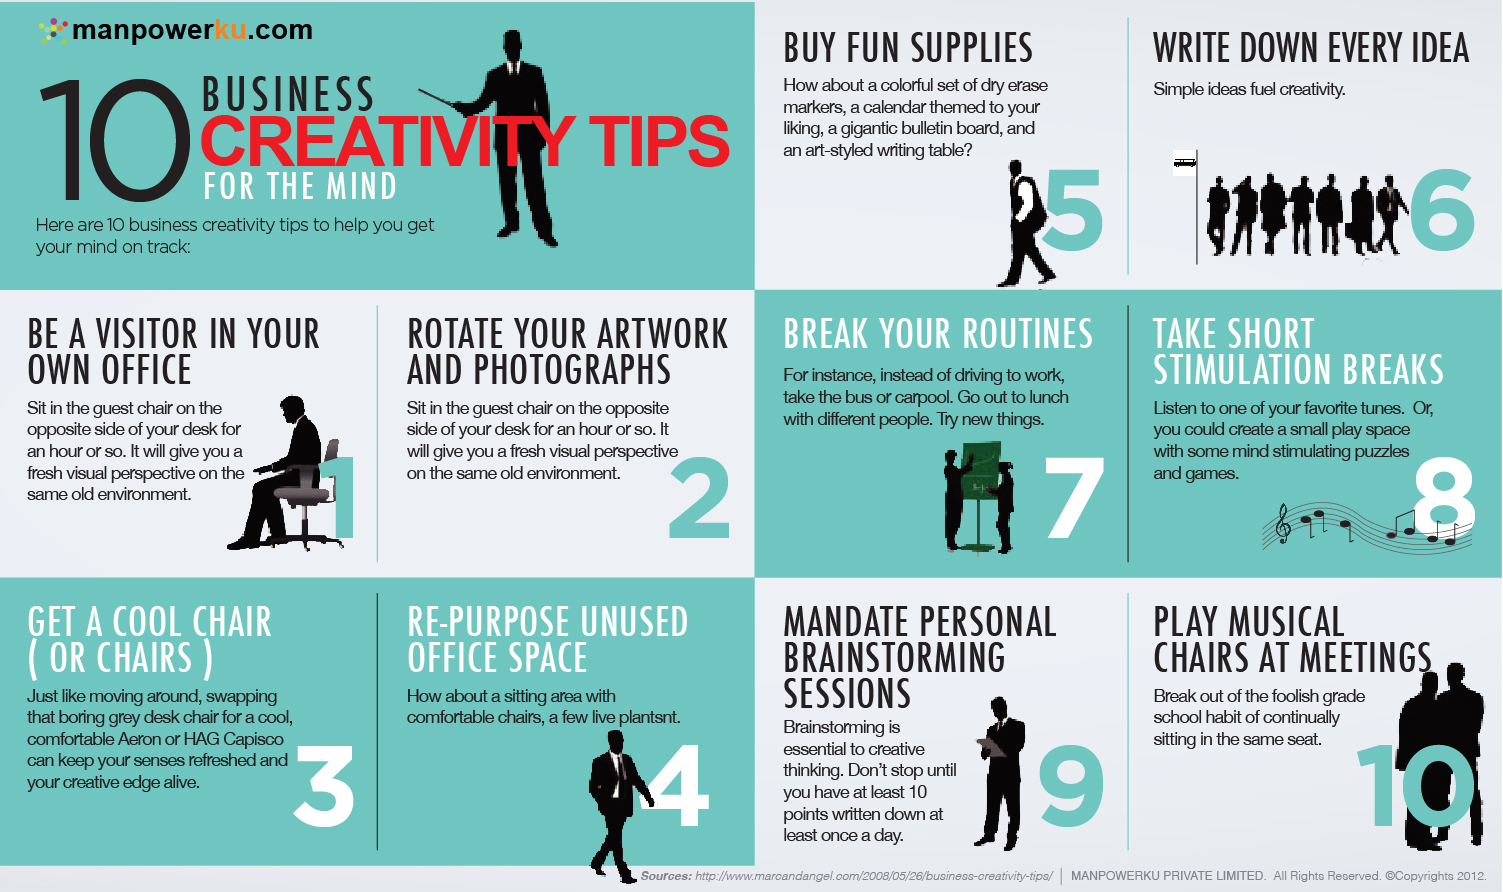 10-Business-Creativity-Tips-for-the-Mind